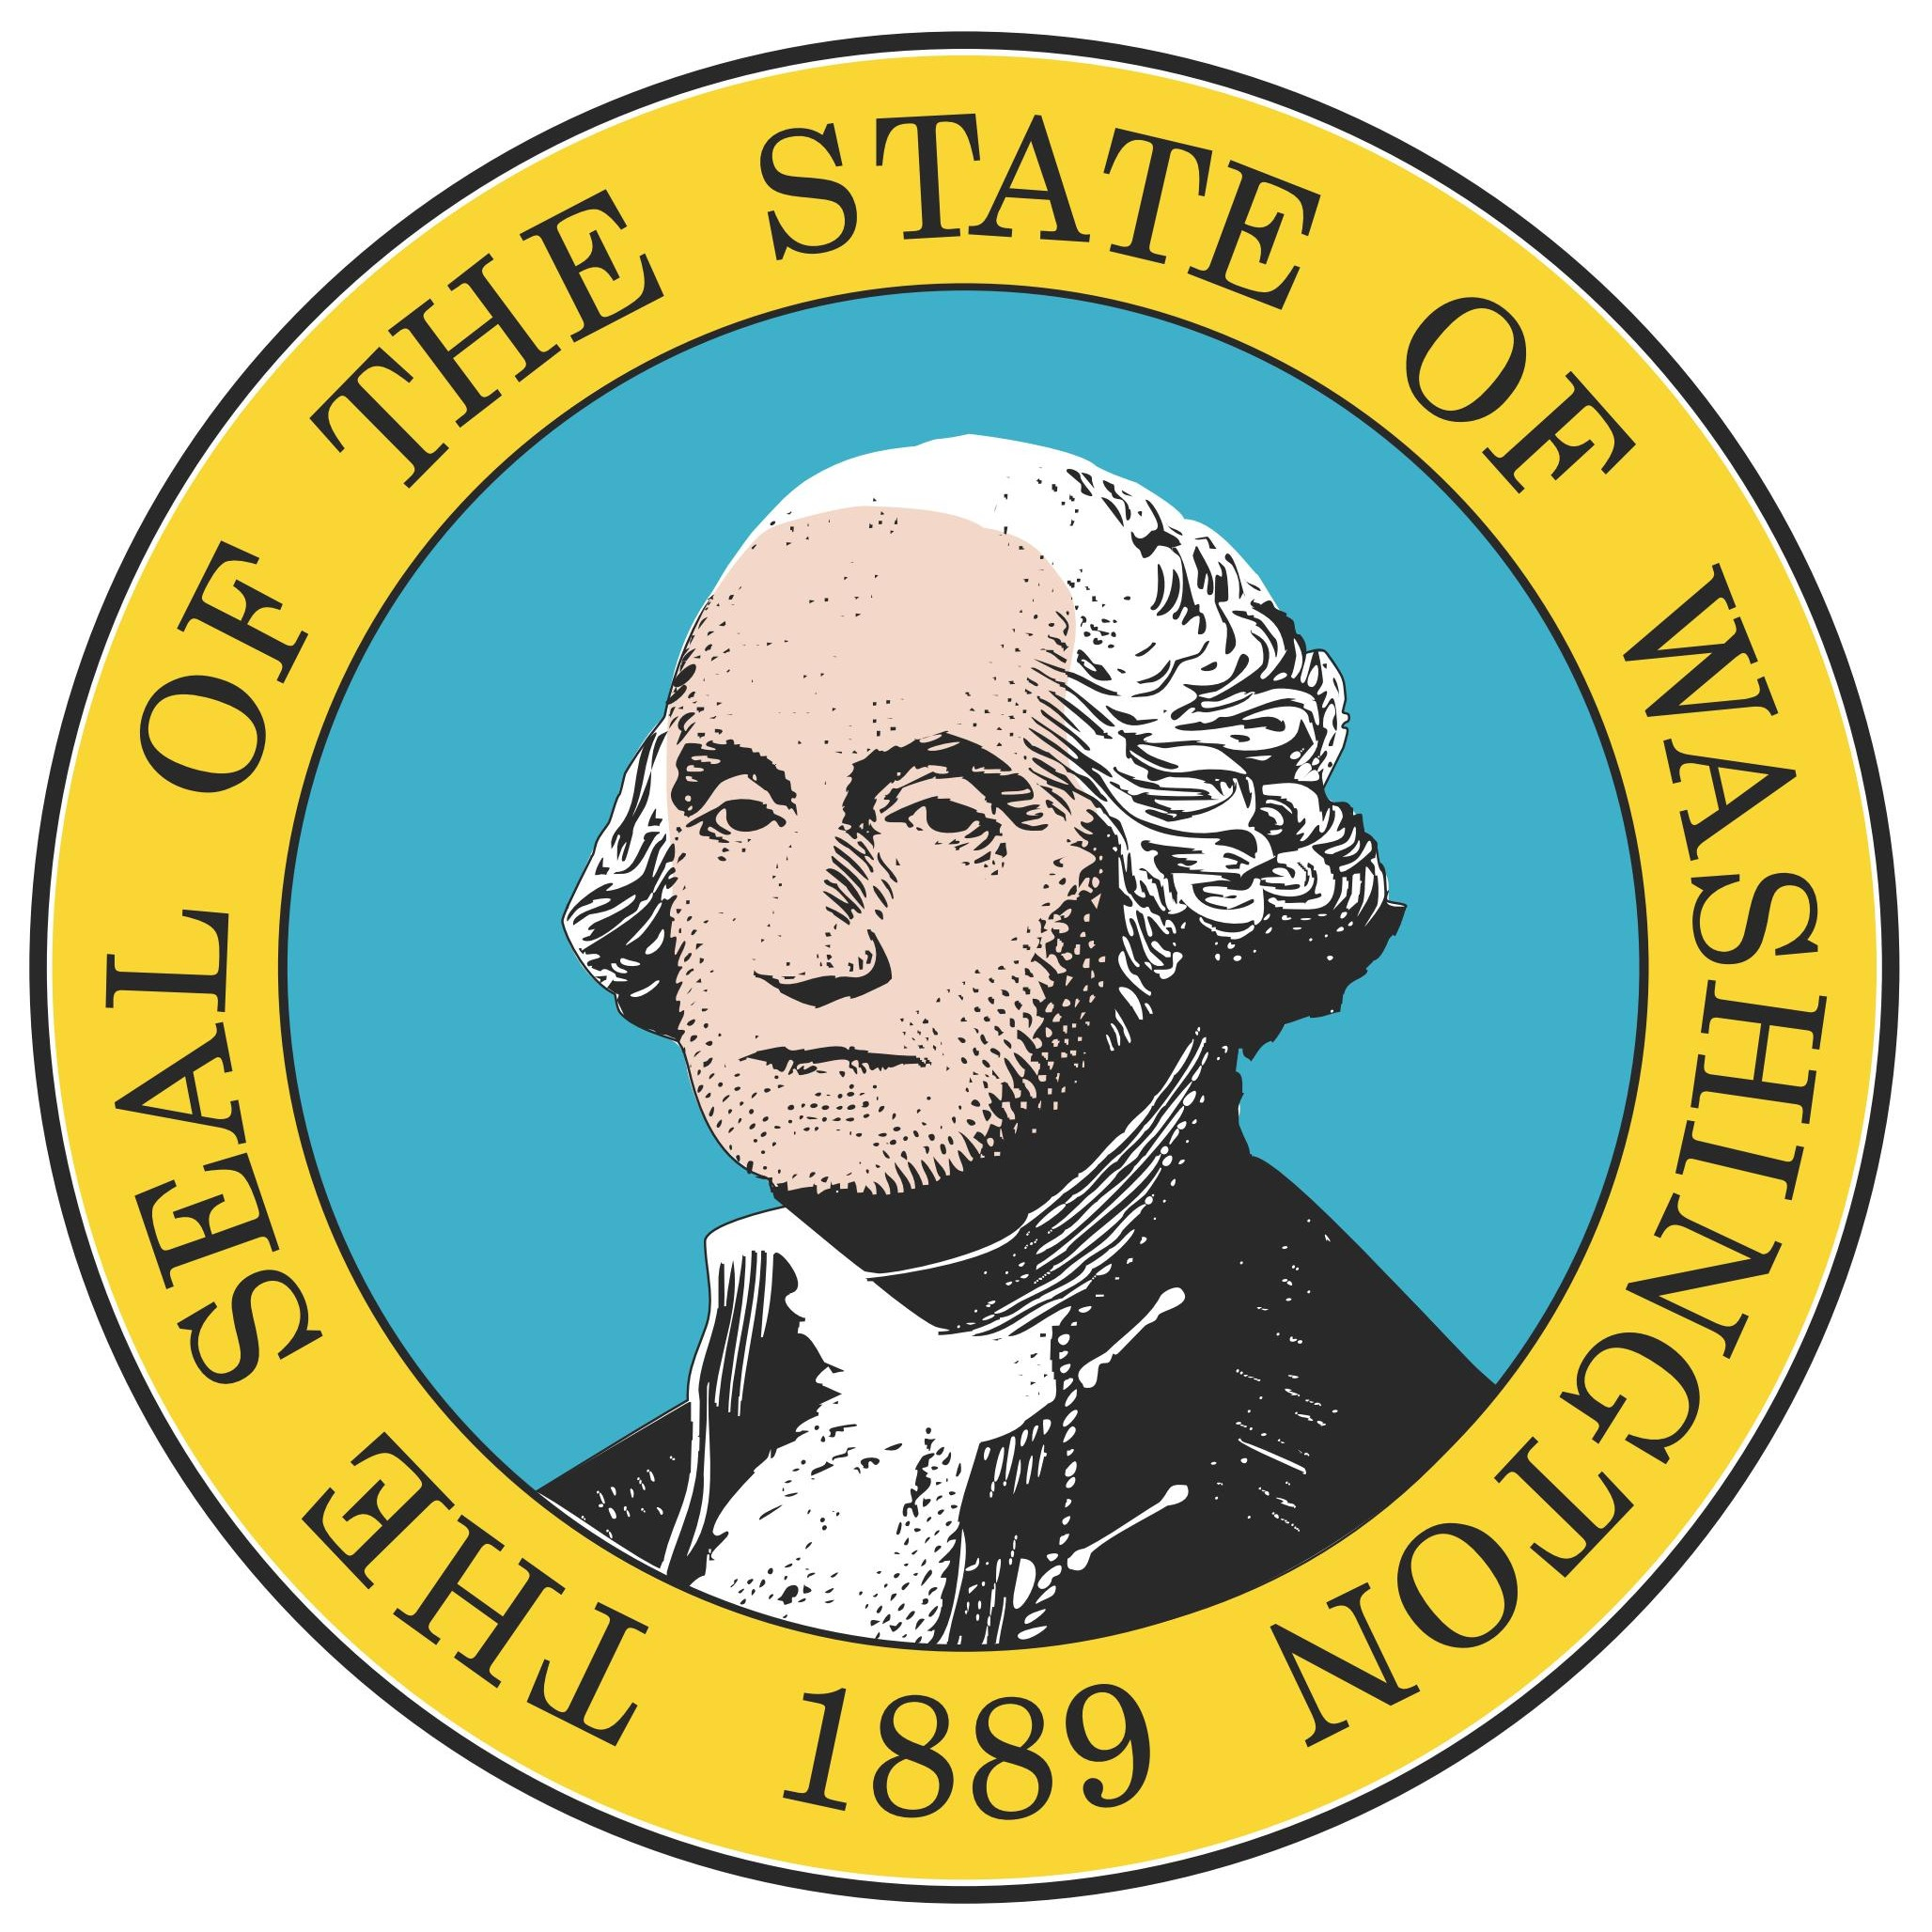 Seal_of_Washington.jpg